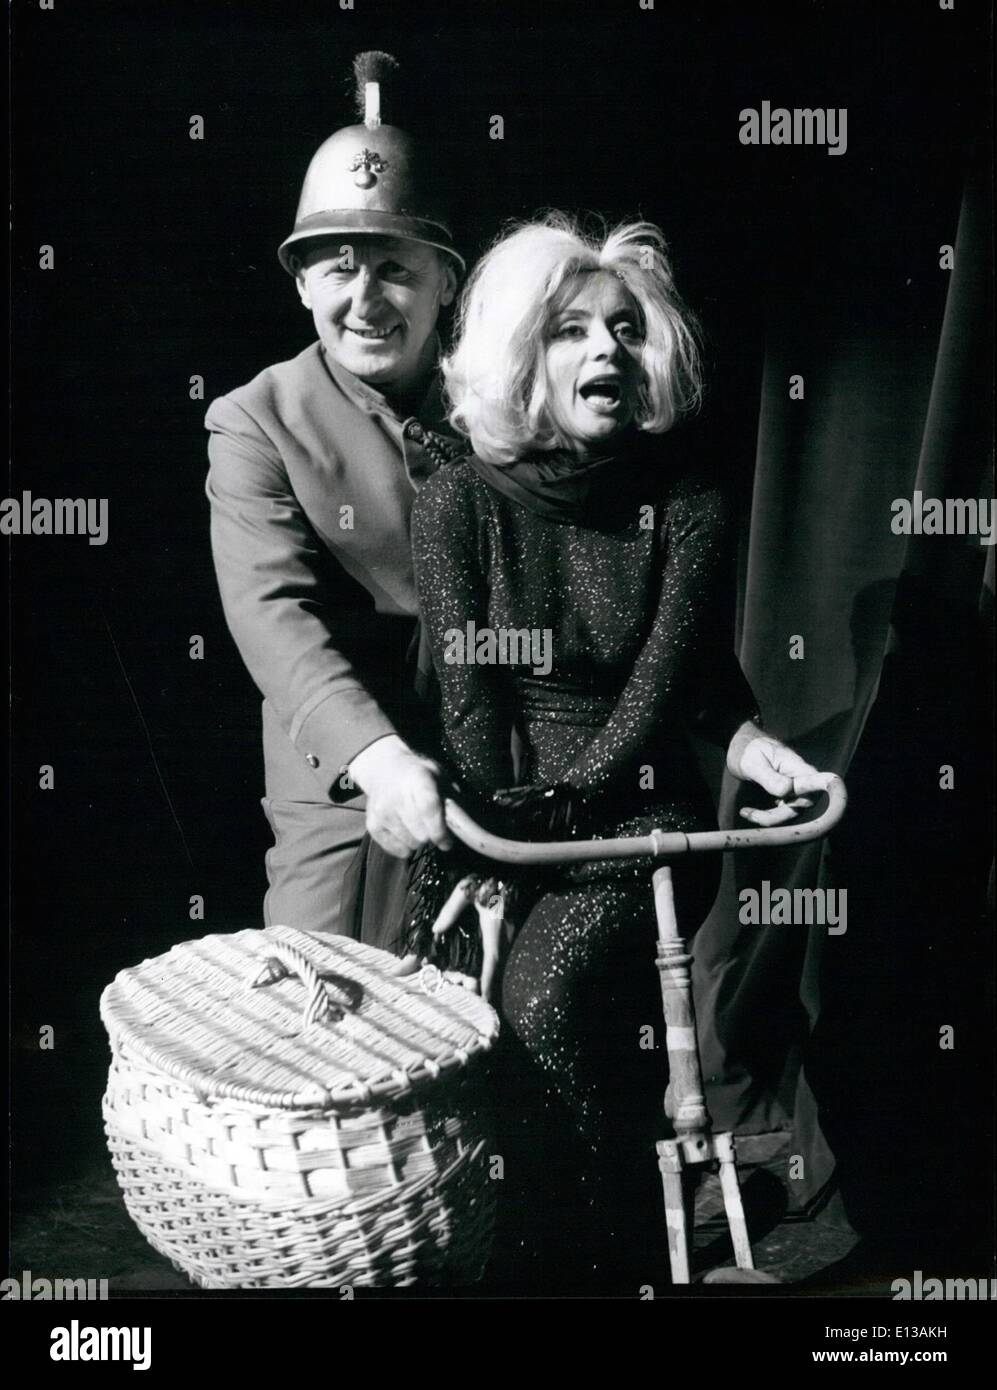 Feb. 29, 2012 - Annie Cordy, Bourvil rehearse for new musical. Annie Cordy, and Bourvil, the famous comedian couple, Stock Photo